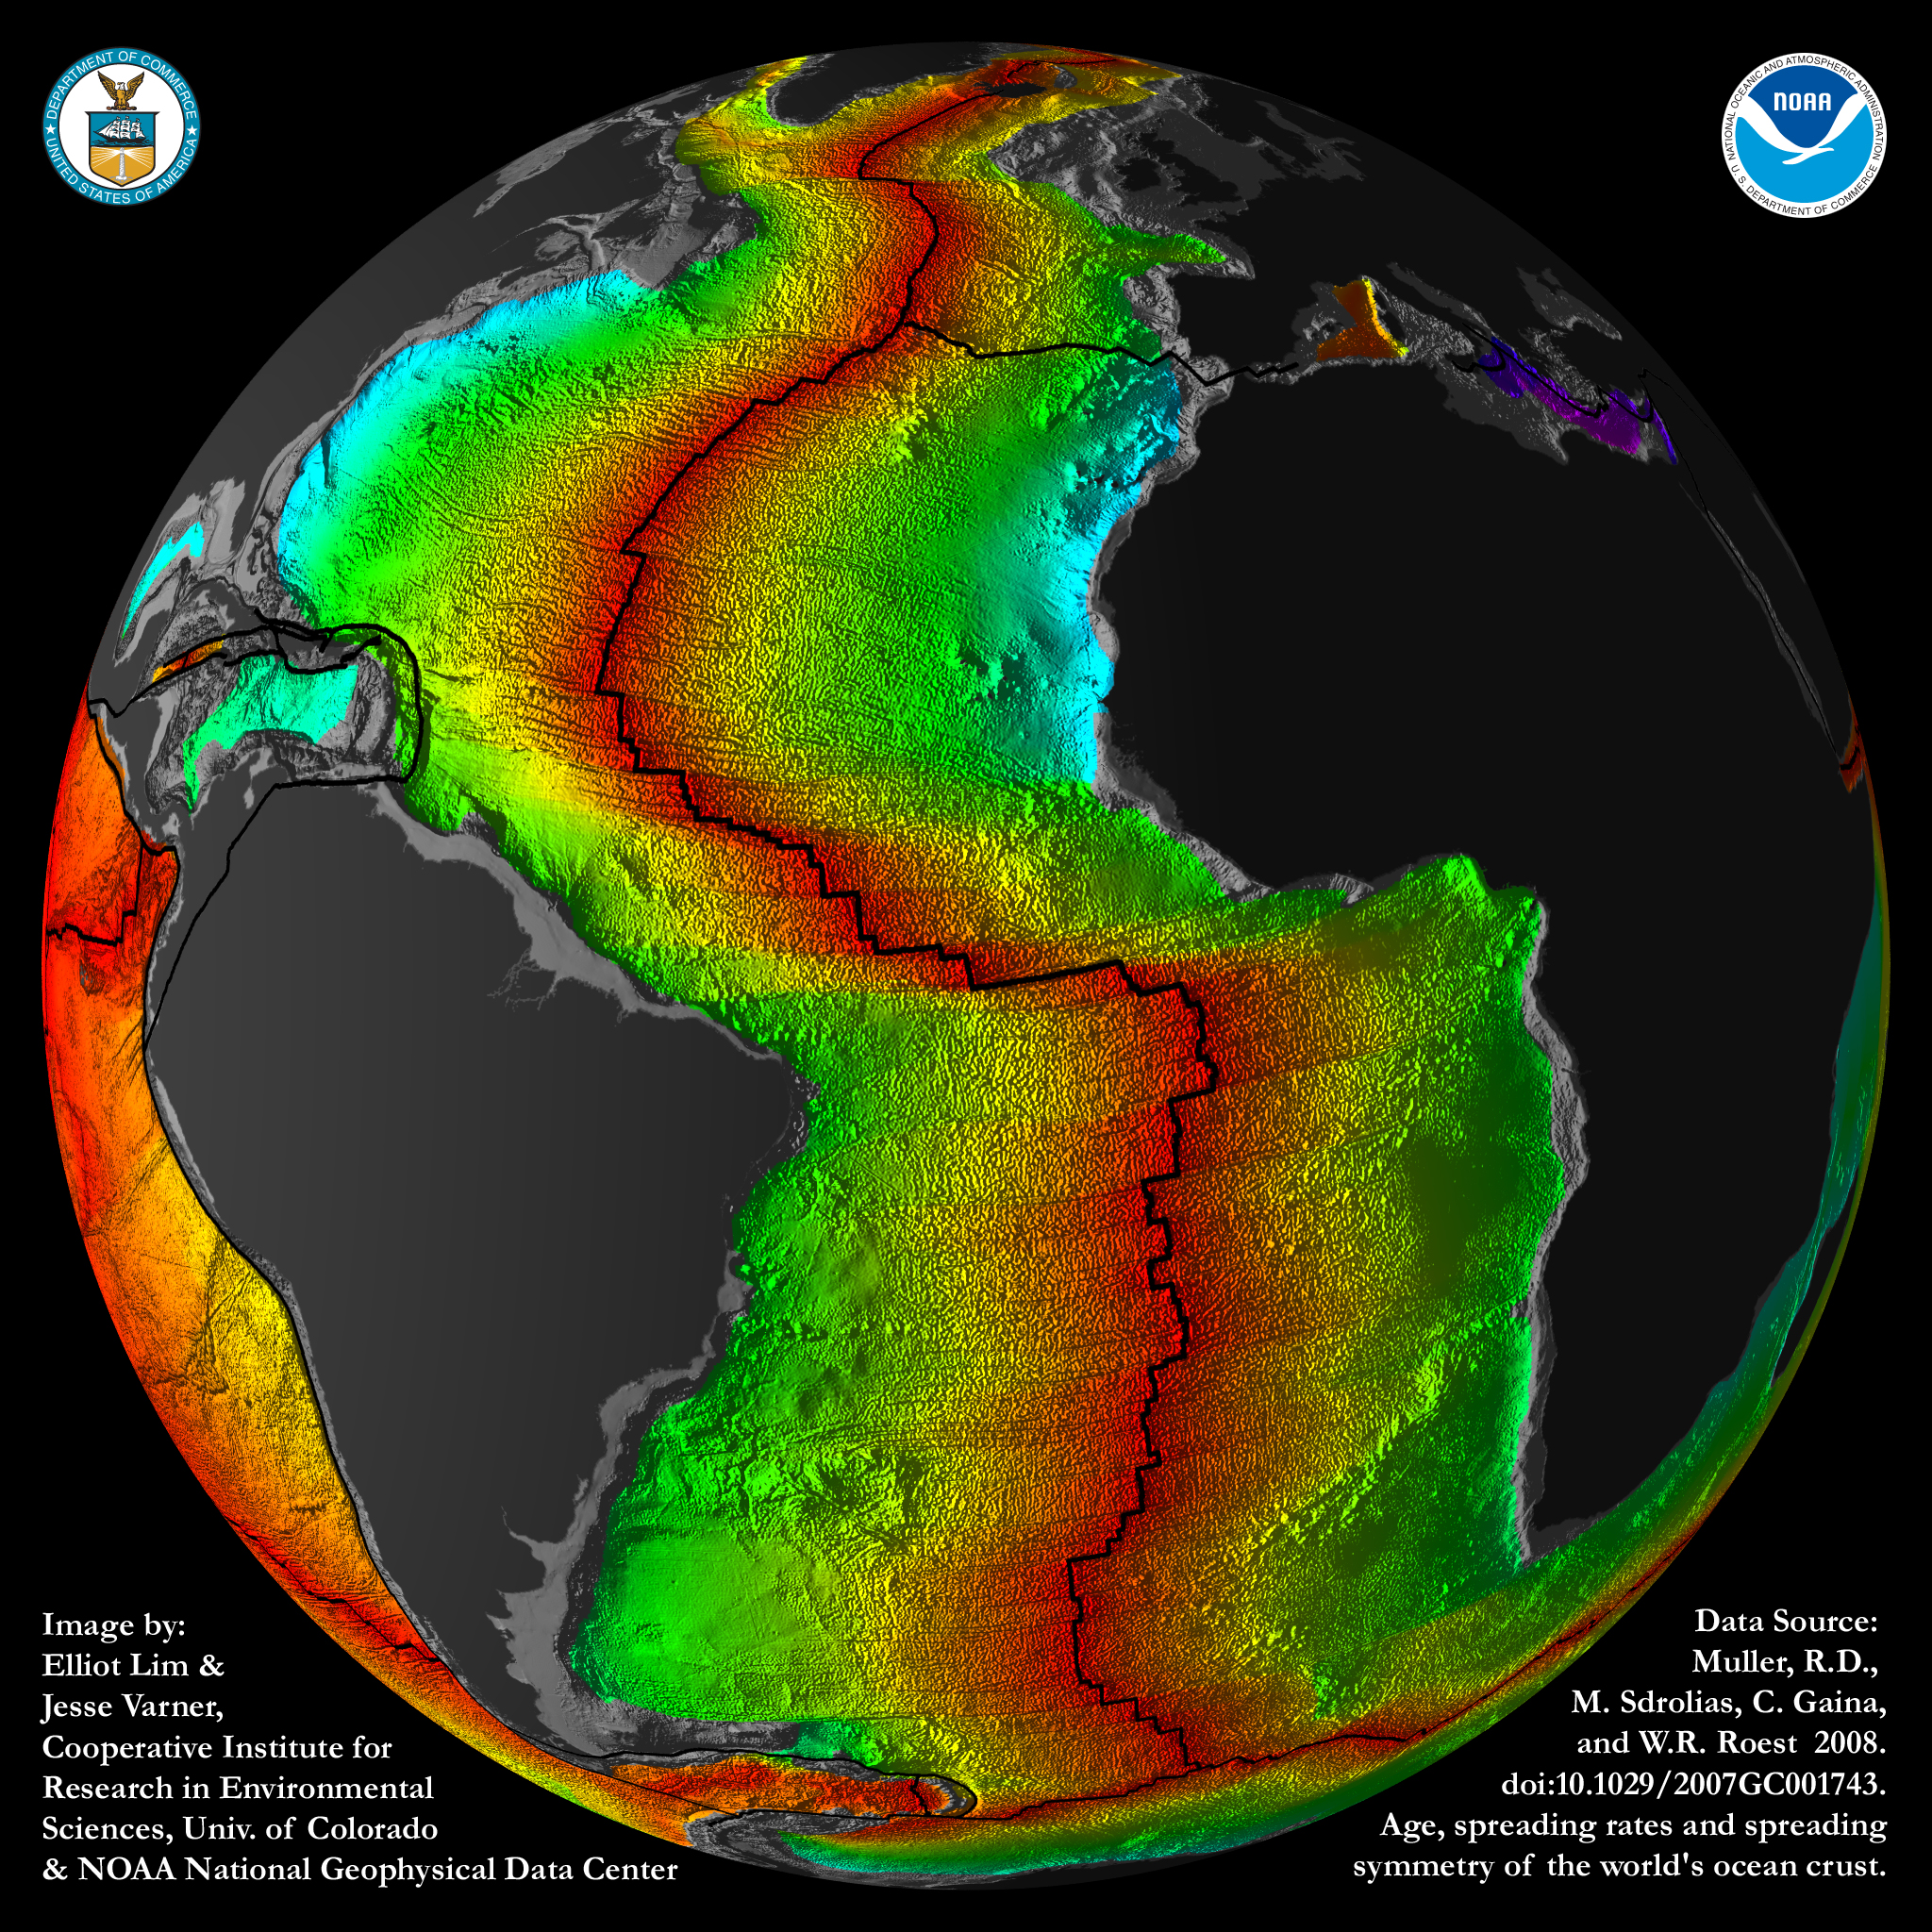 Images crustal ages of the ocean floor ncei jpg 2048x2048 atlantic crustal age image black background gumiabroncs Image collections